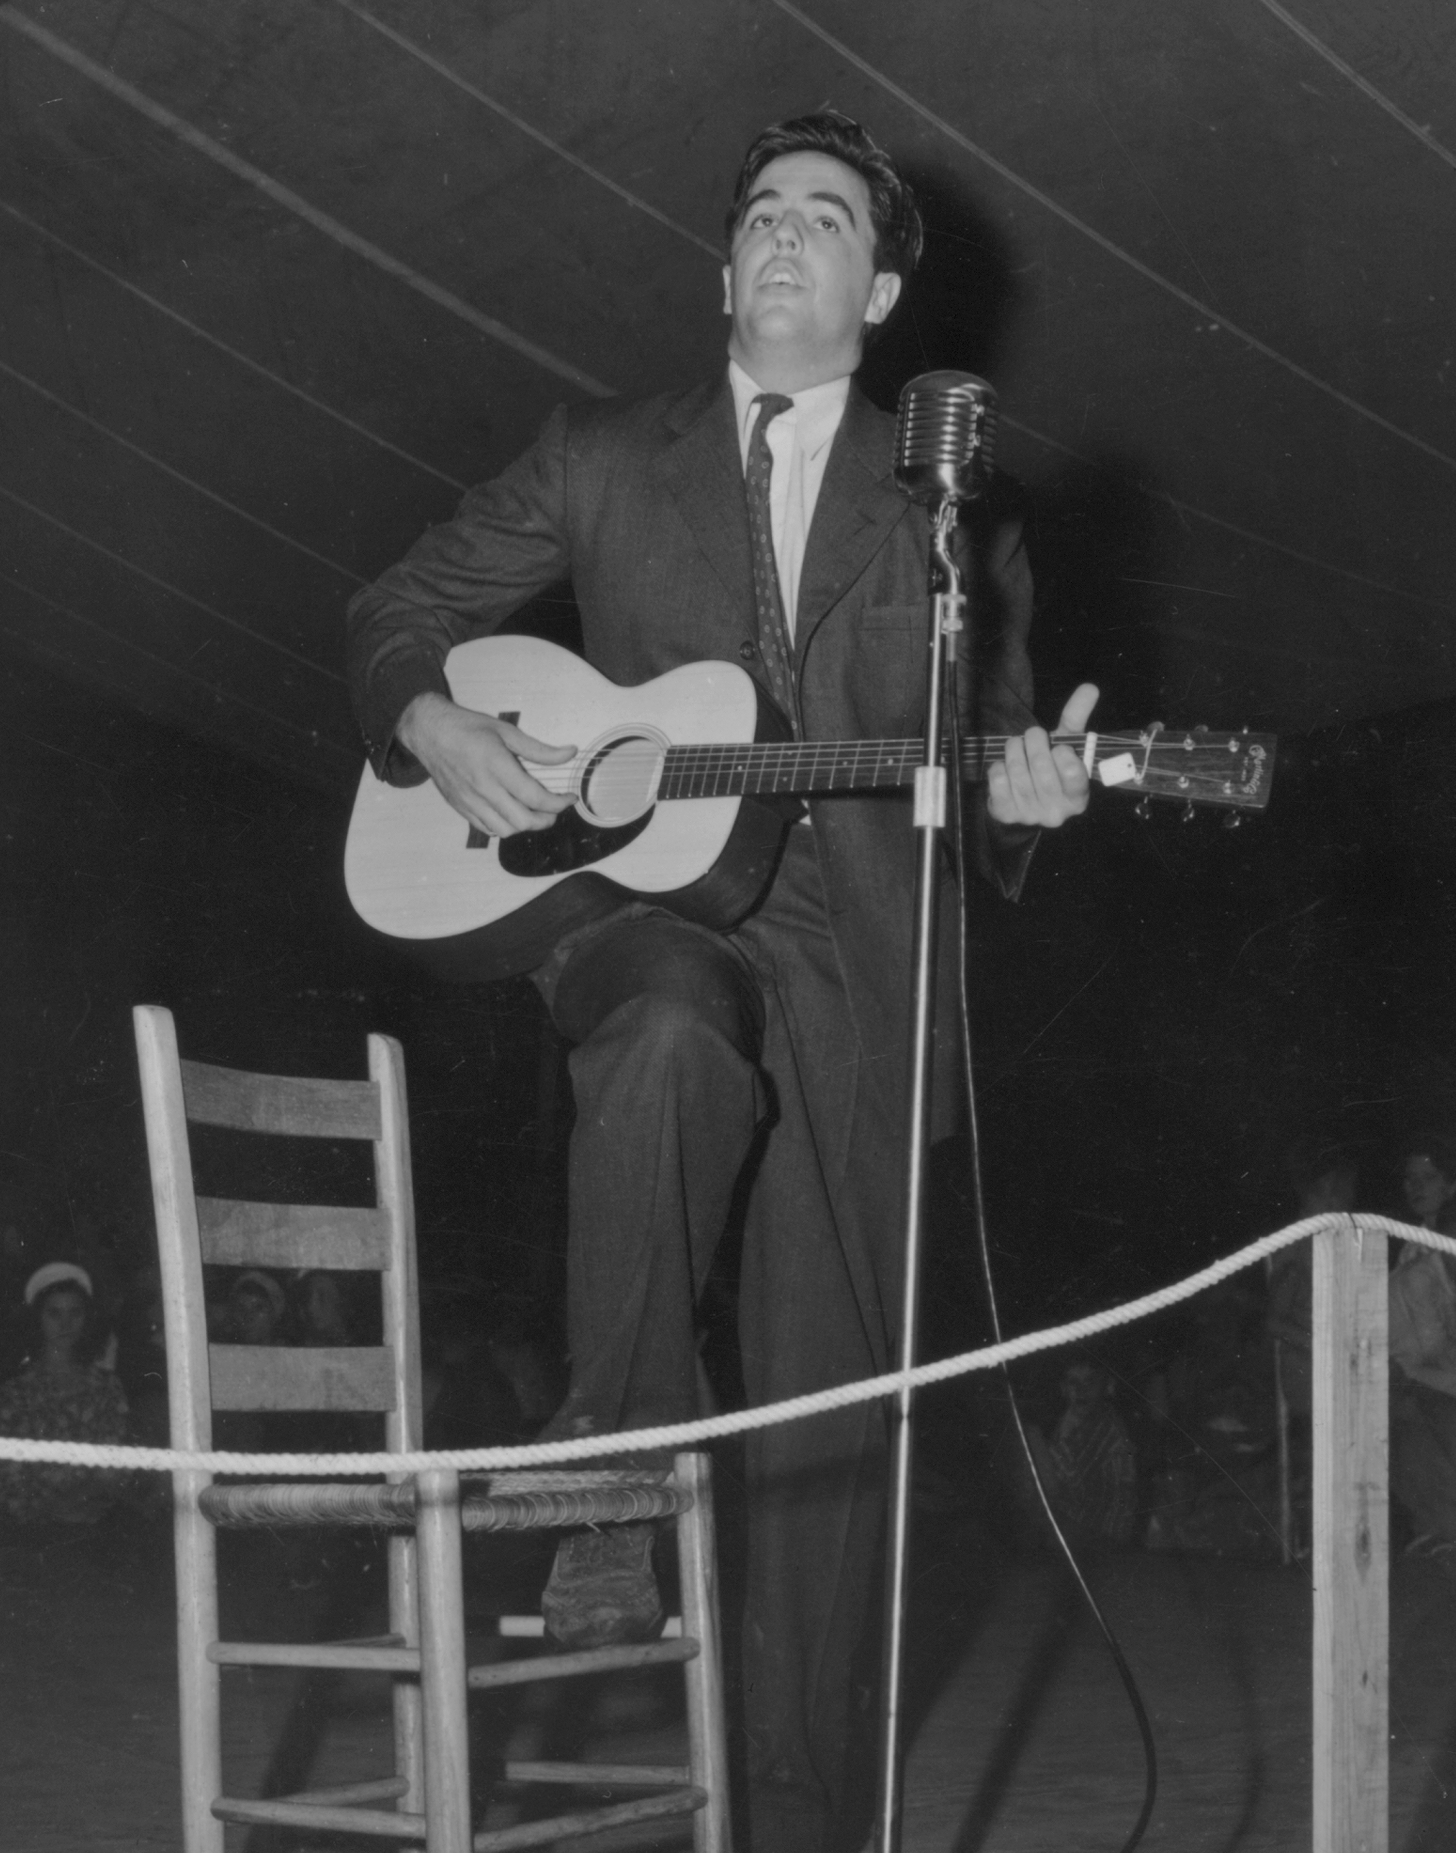 Lomax playing guitar on stage at the Mountain Music Festival, [[Asheville, North Carolina]], in the early 1940s.